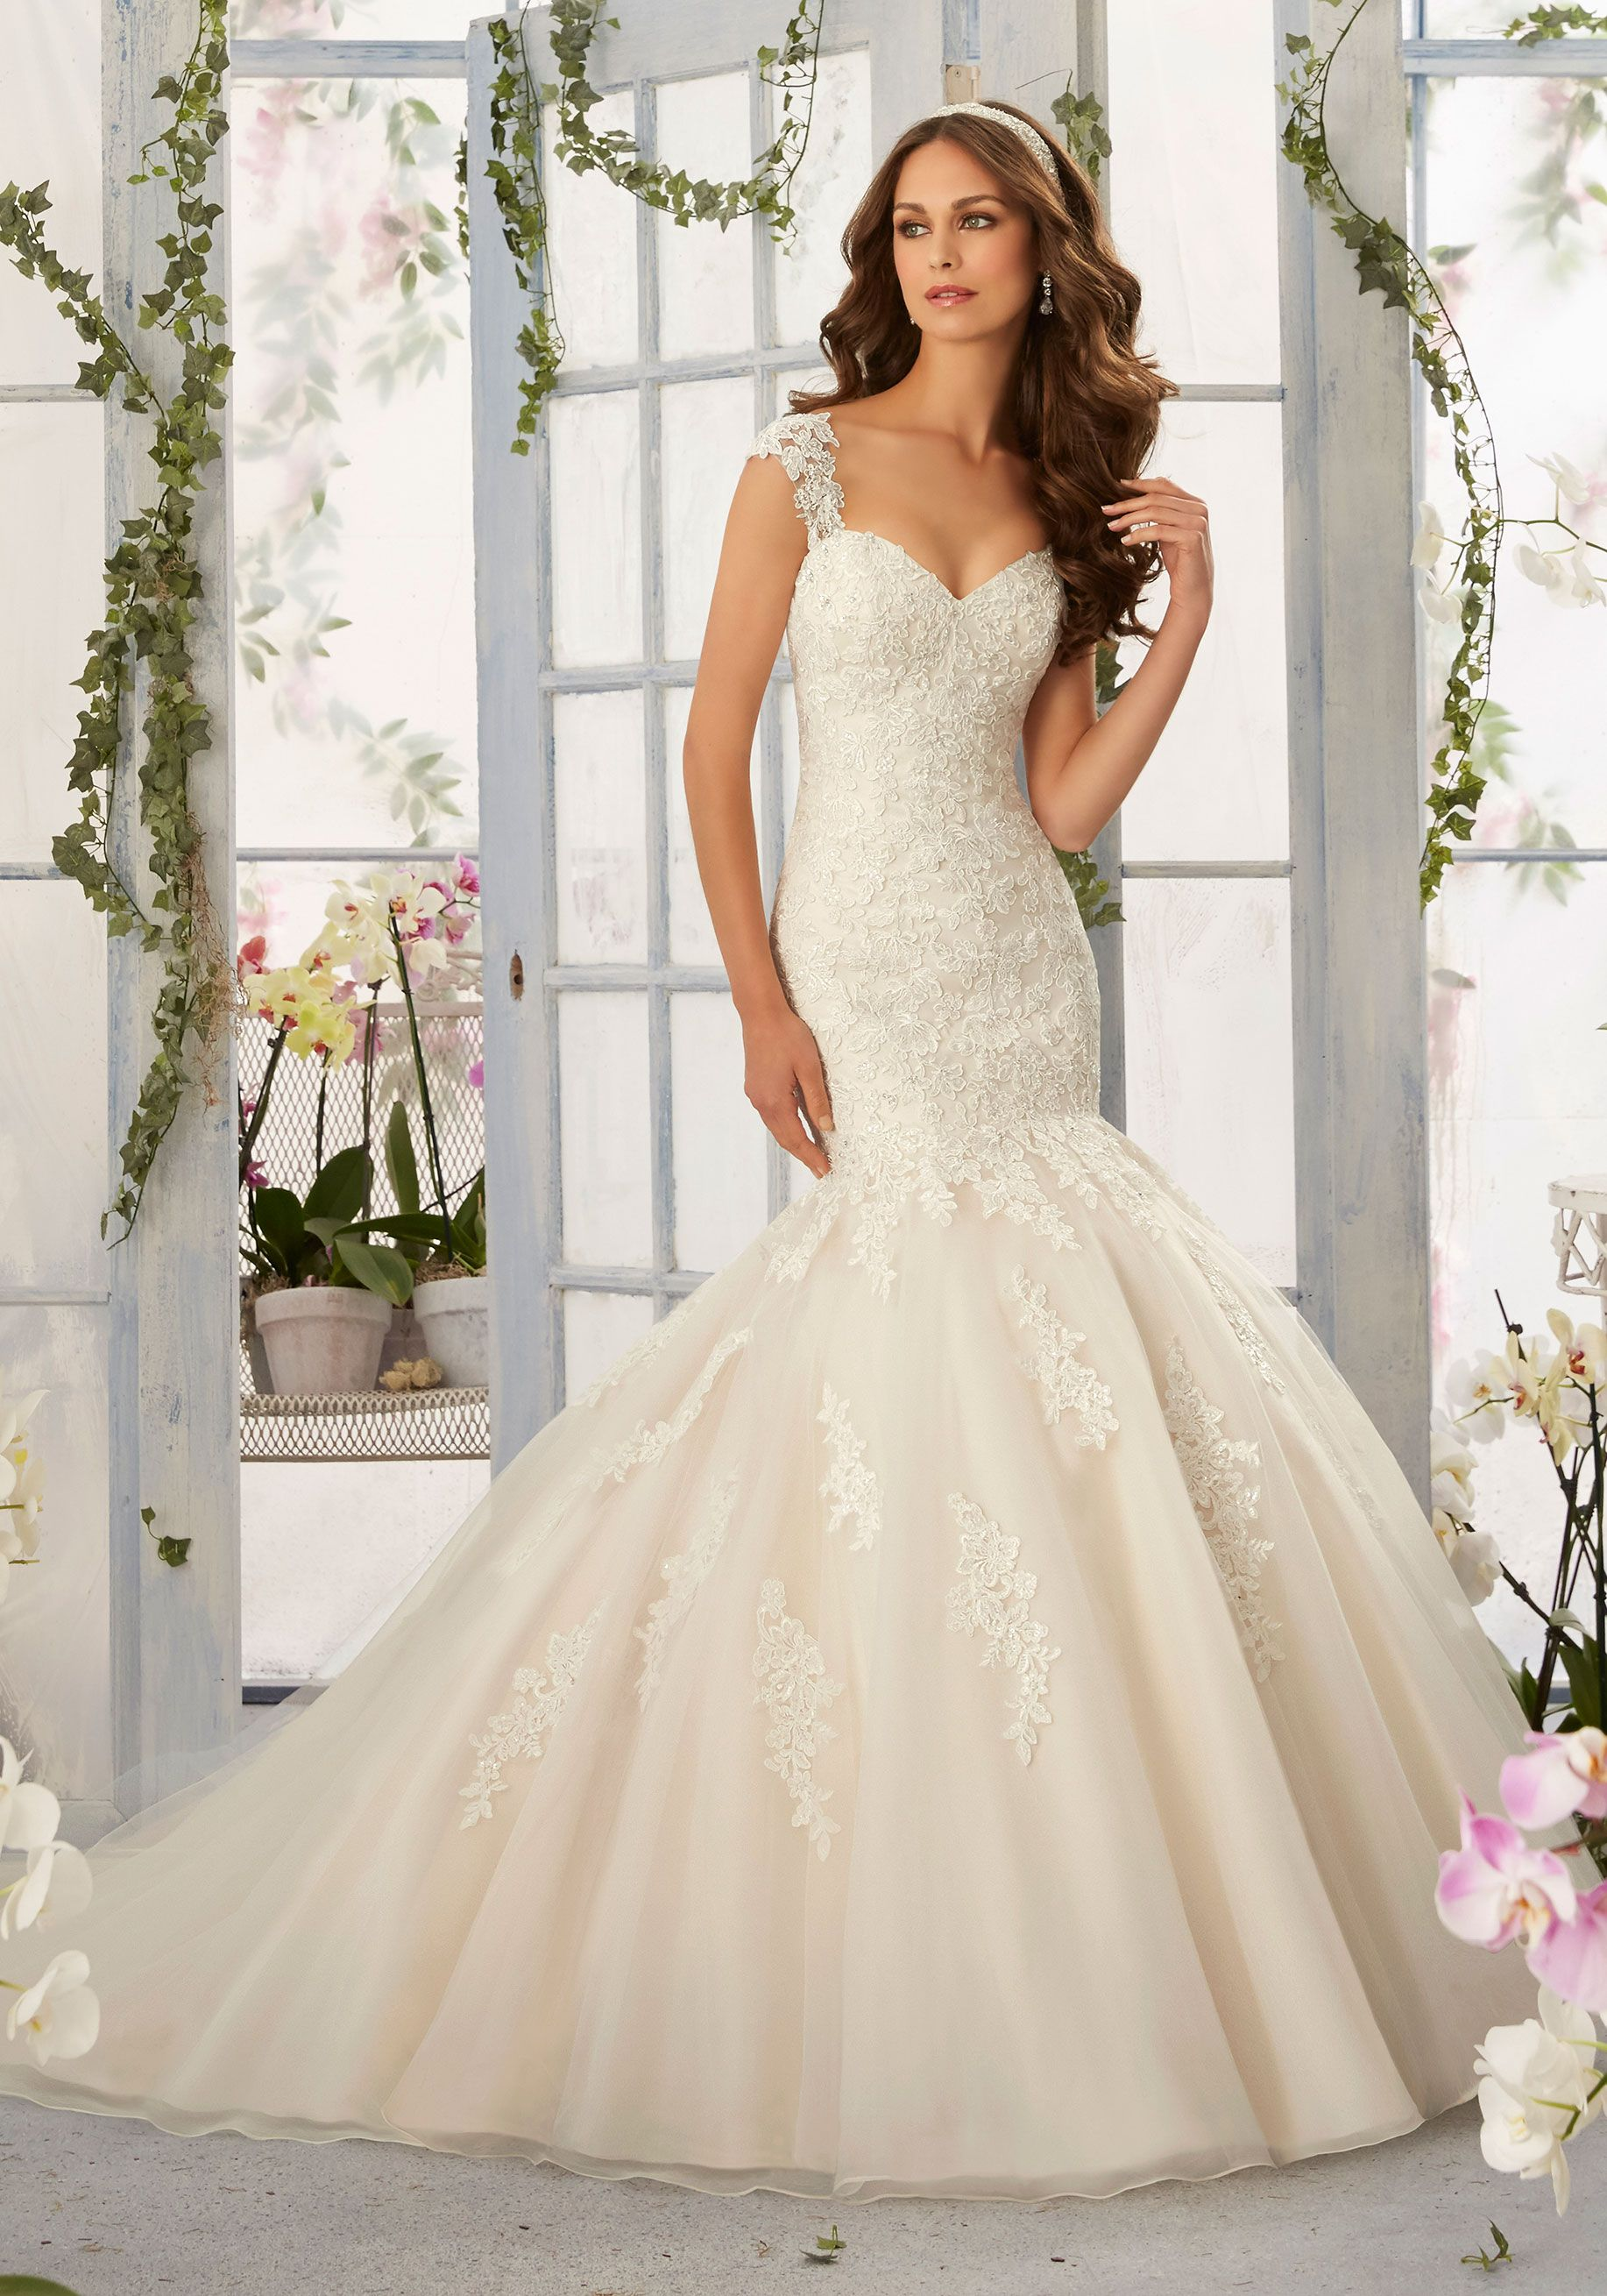 Tulle mermaid wedding dress  Alençon Lace Appliqués with Frosted Beading onto Tulle Mermaid